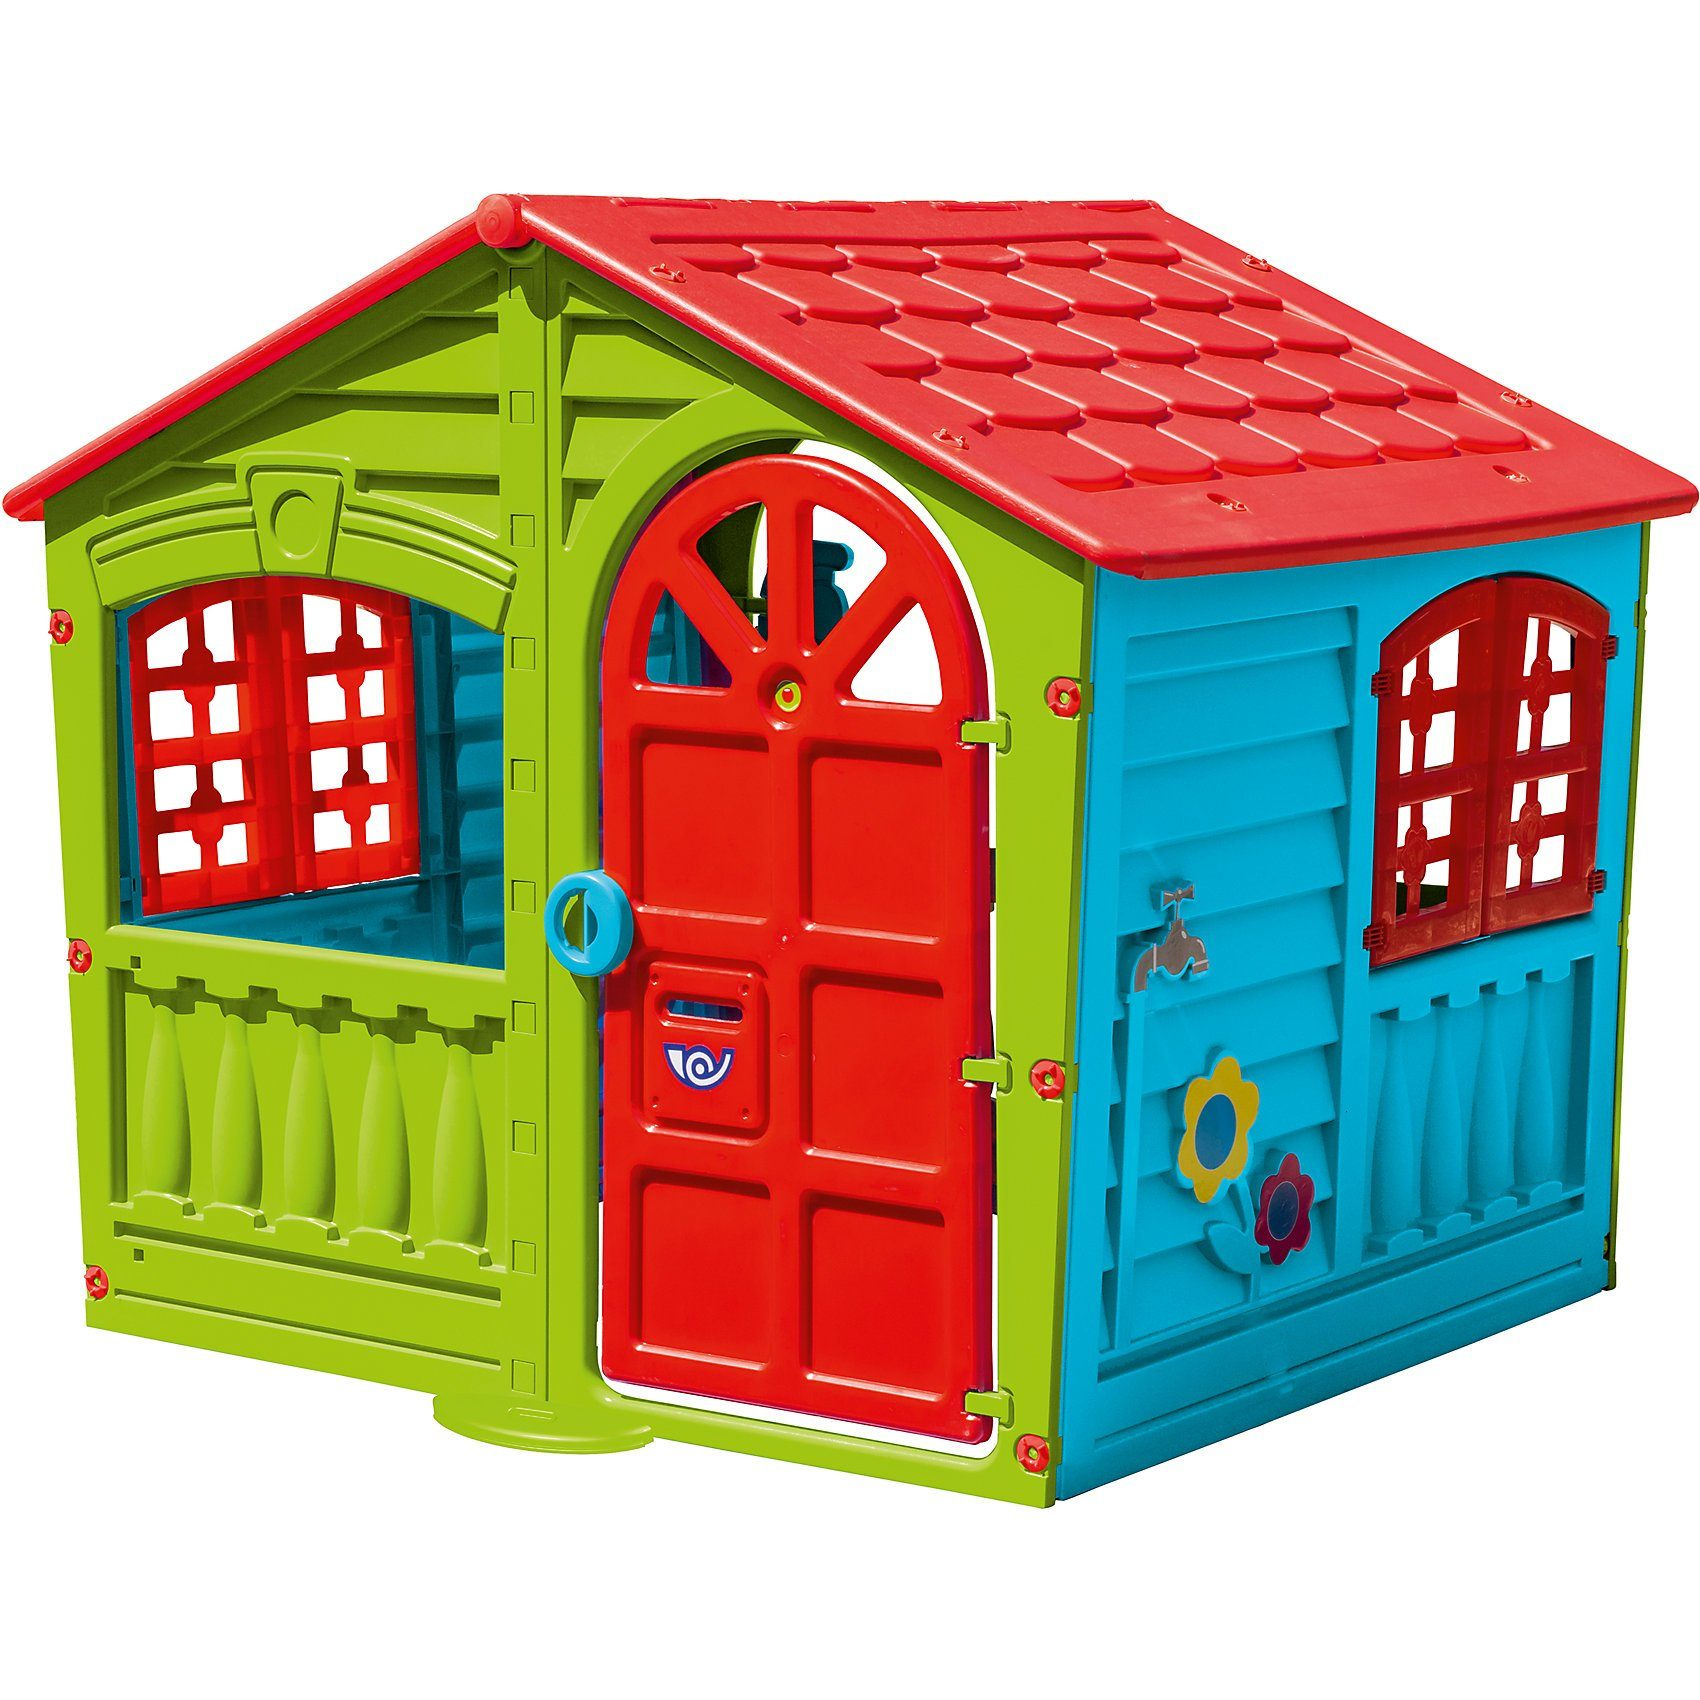 Beluga Kinderspielhaus House of Fun, 130 x 111 x 115 cm